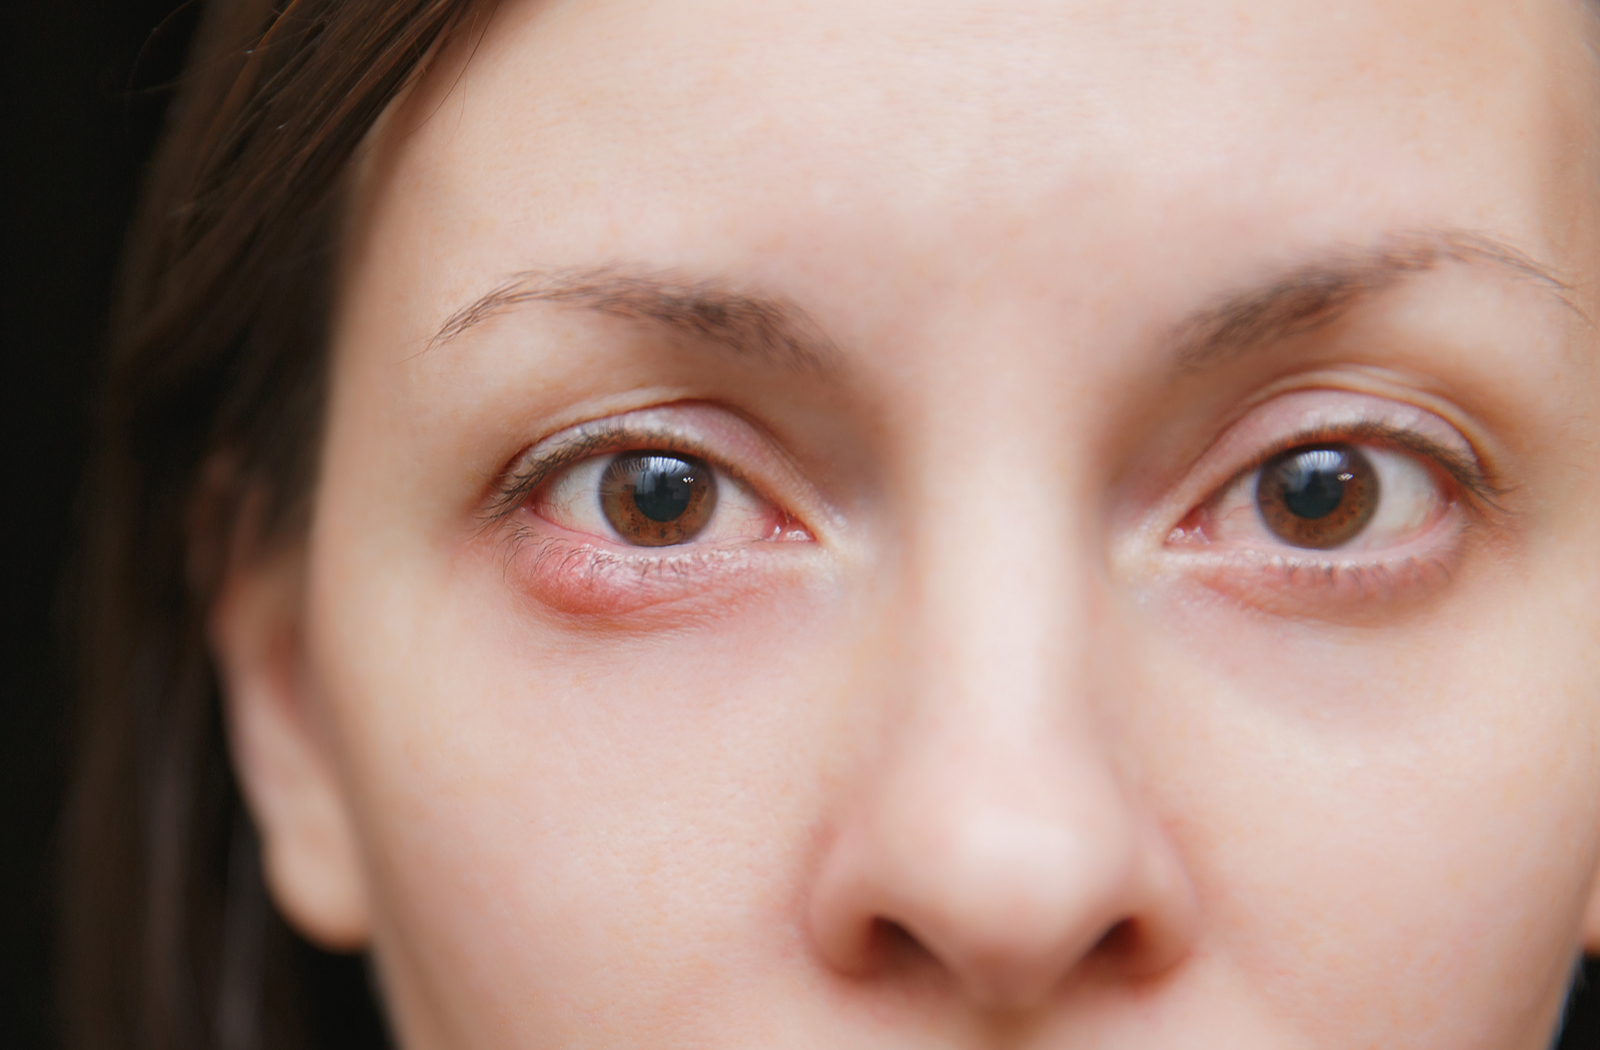 Woman with a stye in her eye as a result of blocked meibomian glands that can be improved with IPL.